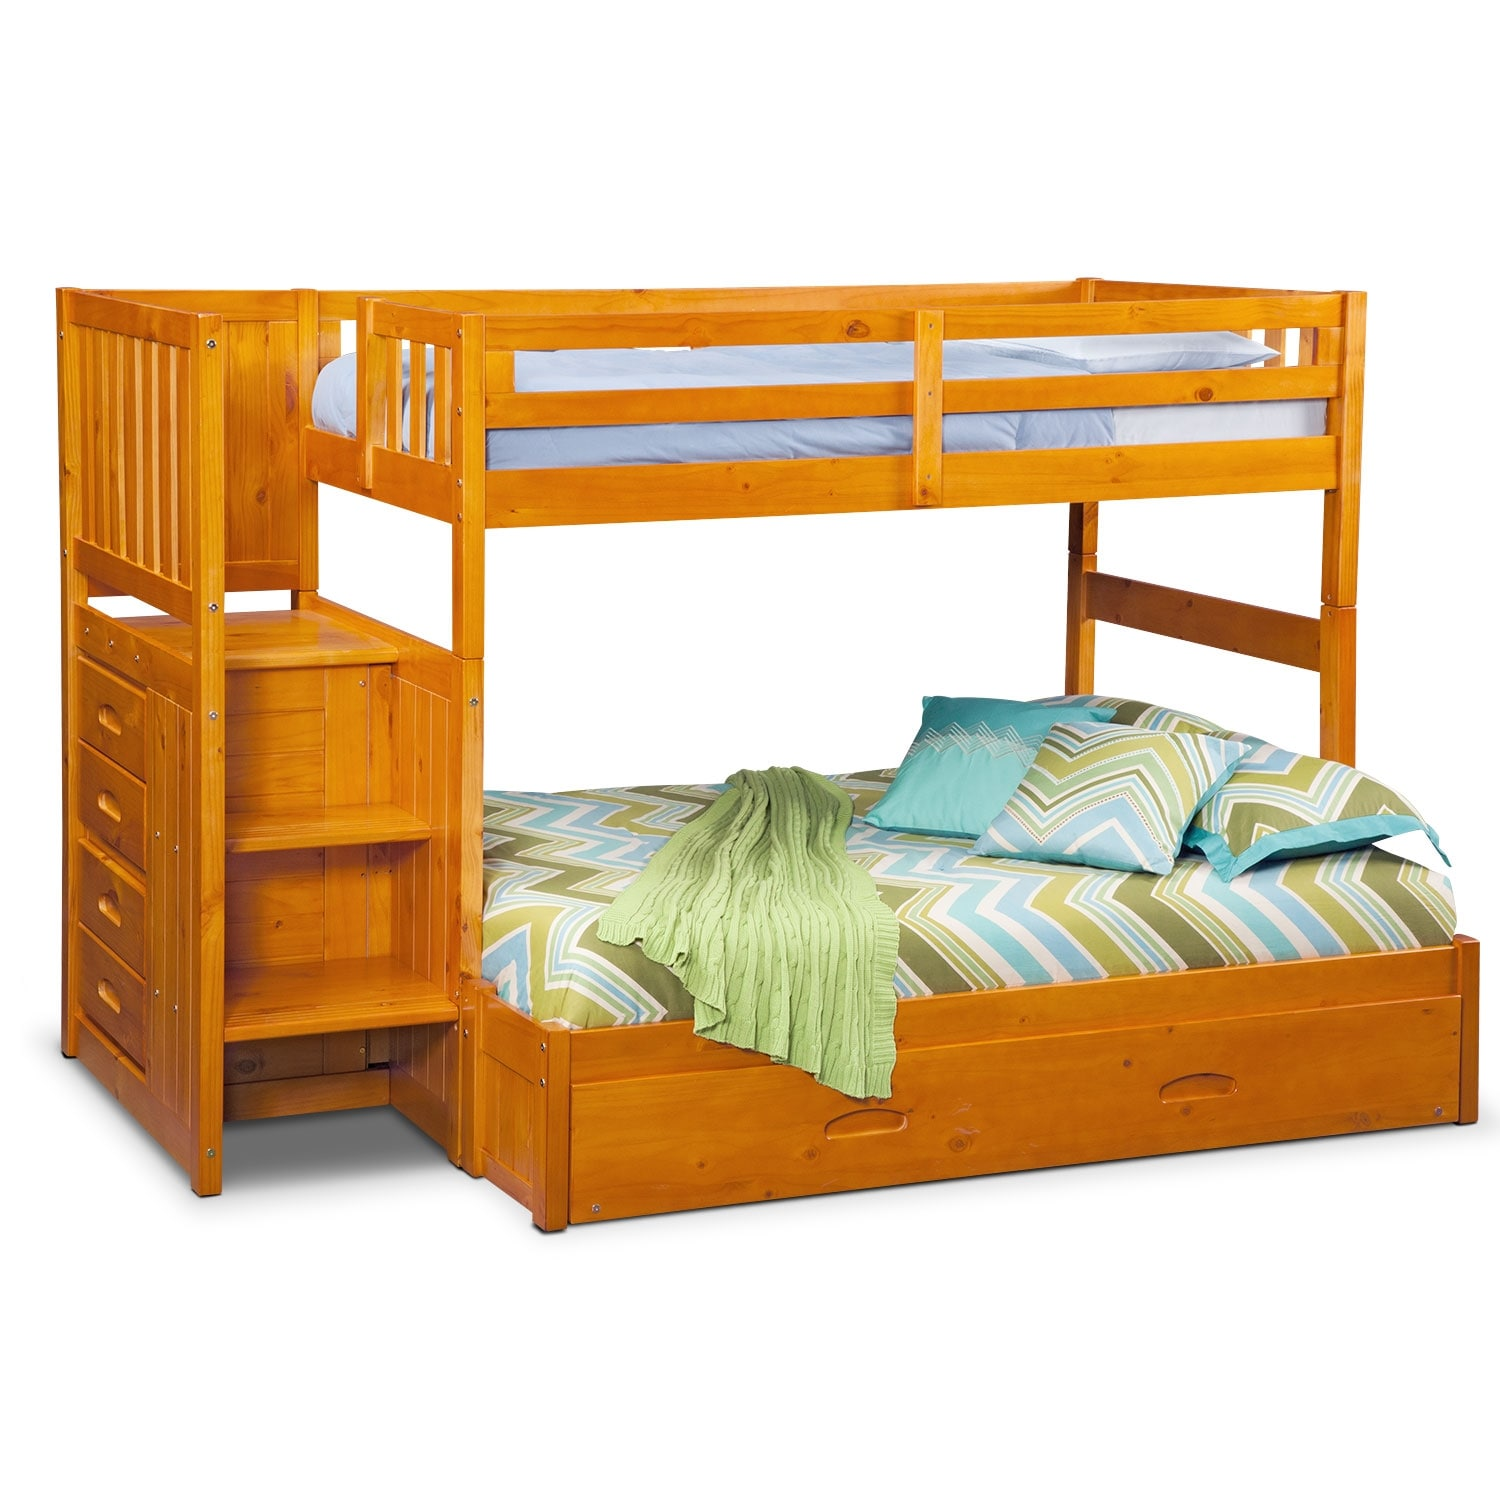 Ranger Pine Twin/Full Bunk Bed w/ Stairs, Storage and Trundle